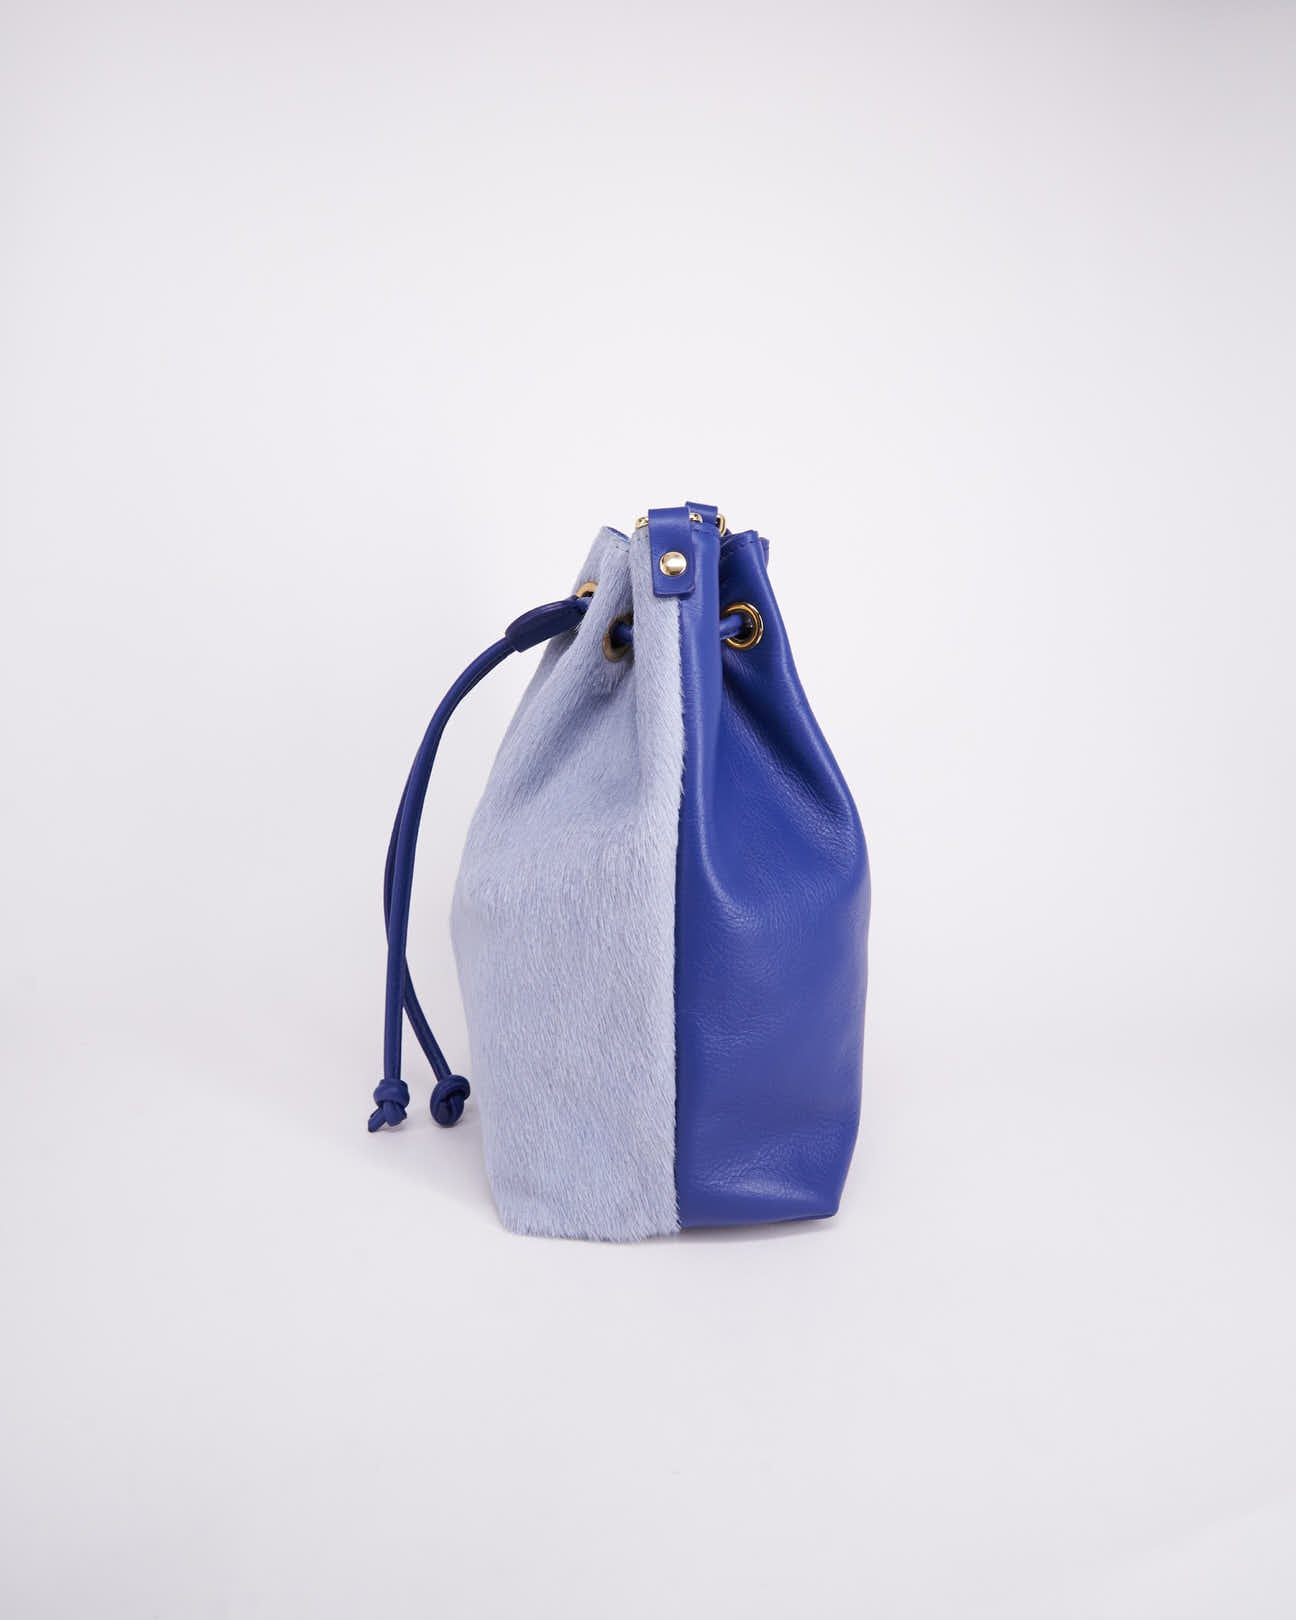 Bag-Nuo Sac-Nuovum-Leather-Blue-localdesigners-Barcelona-Nuovum-Handmade-side